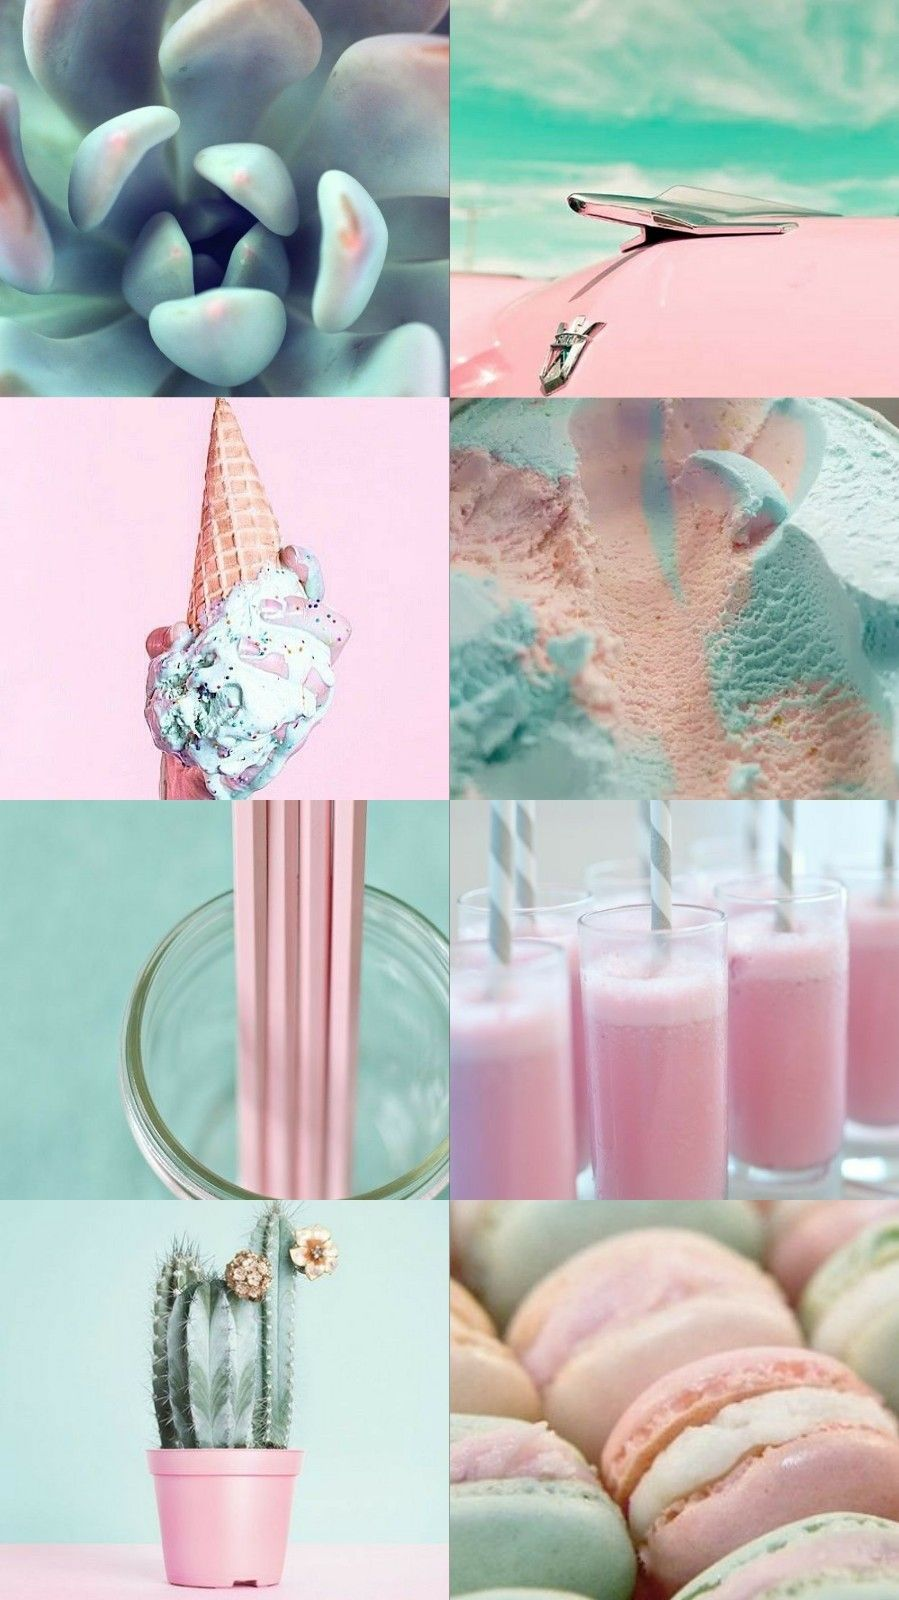 Mint Aesthetic Wallpapers - Top Free Mint Aesthetic Backgrounds